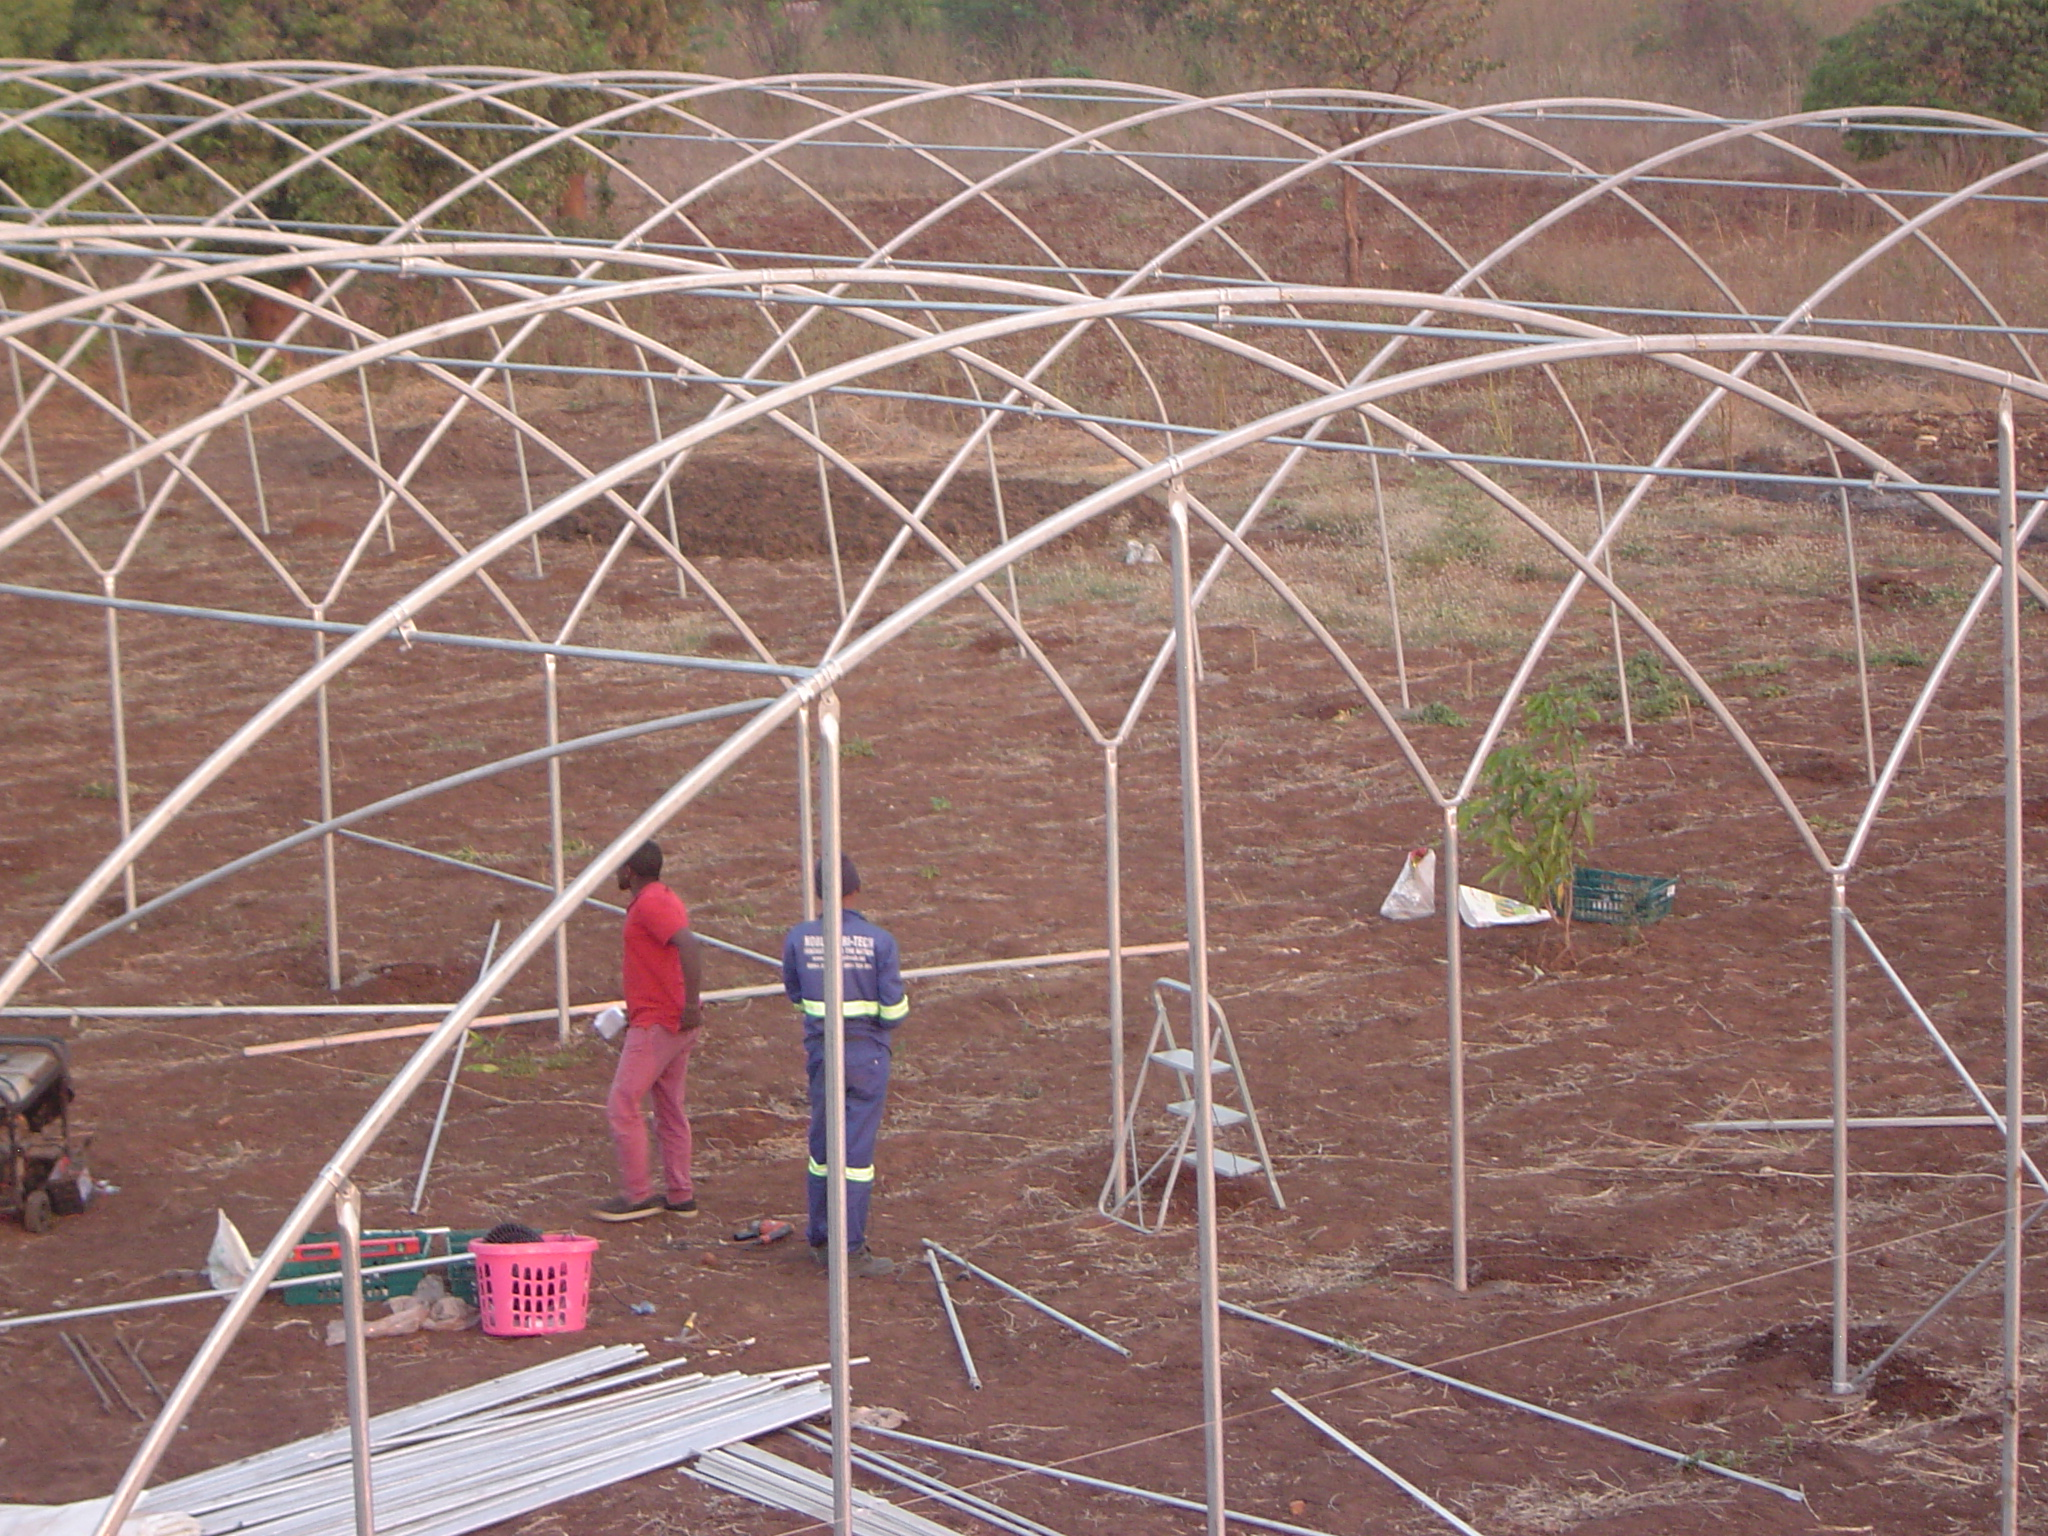 Construction of 45m x 20m Greenhouse at Vees Farm in Chileka Blantyre